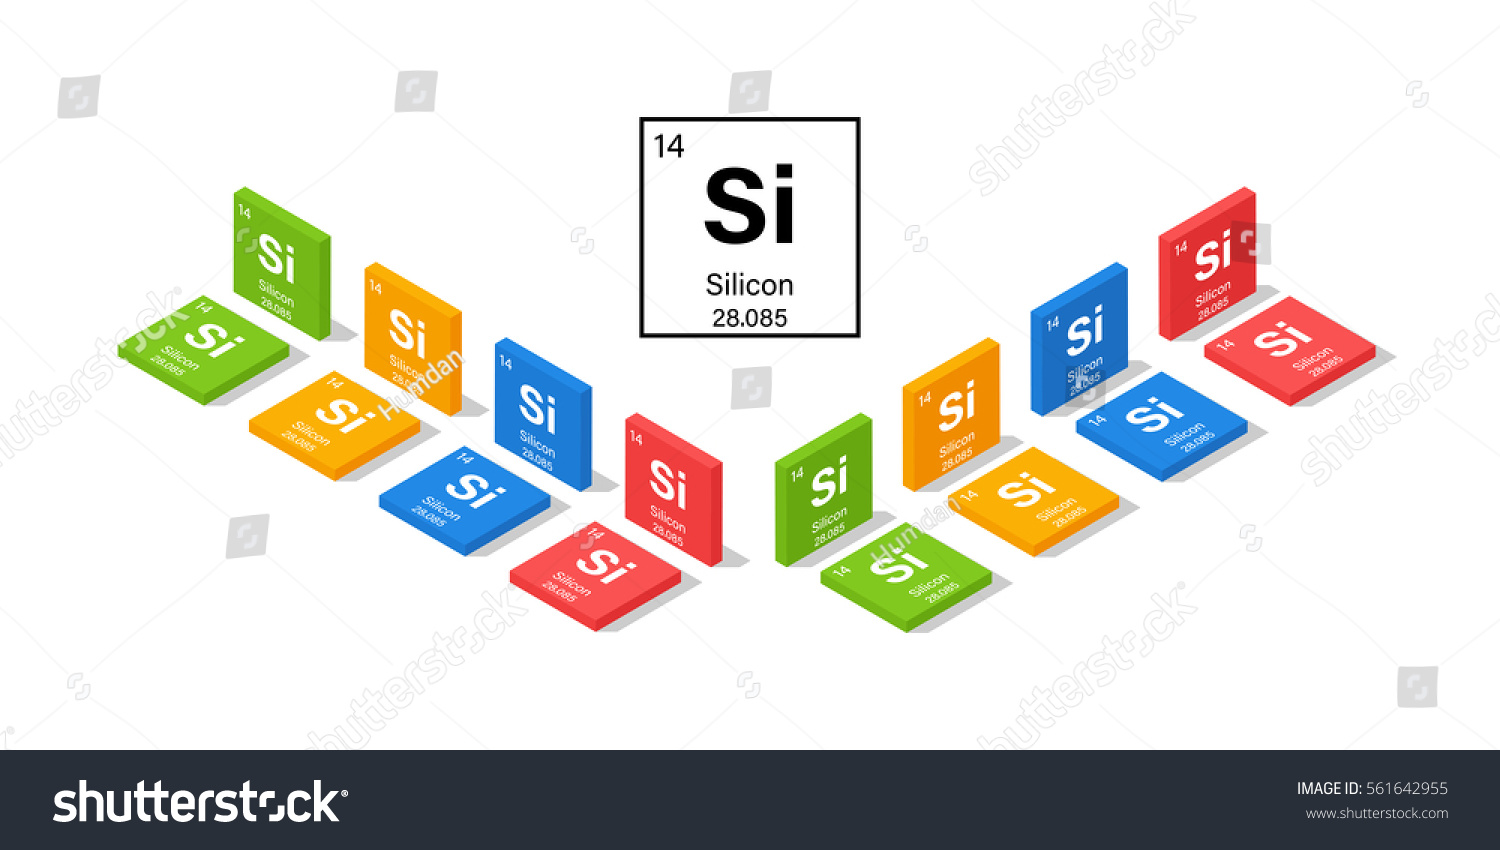 Symbol for silicon on periodic table image collections periodic silicon in periodic table image collections periodic table images periodic table silicon images periodic table images gamestrikefo Image collections